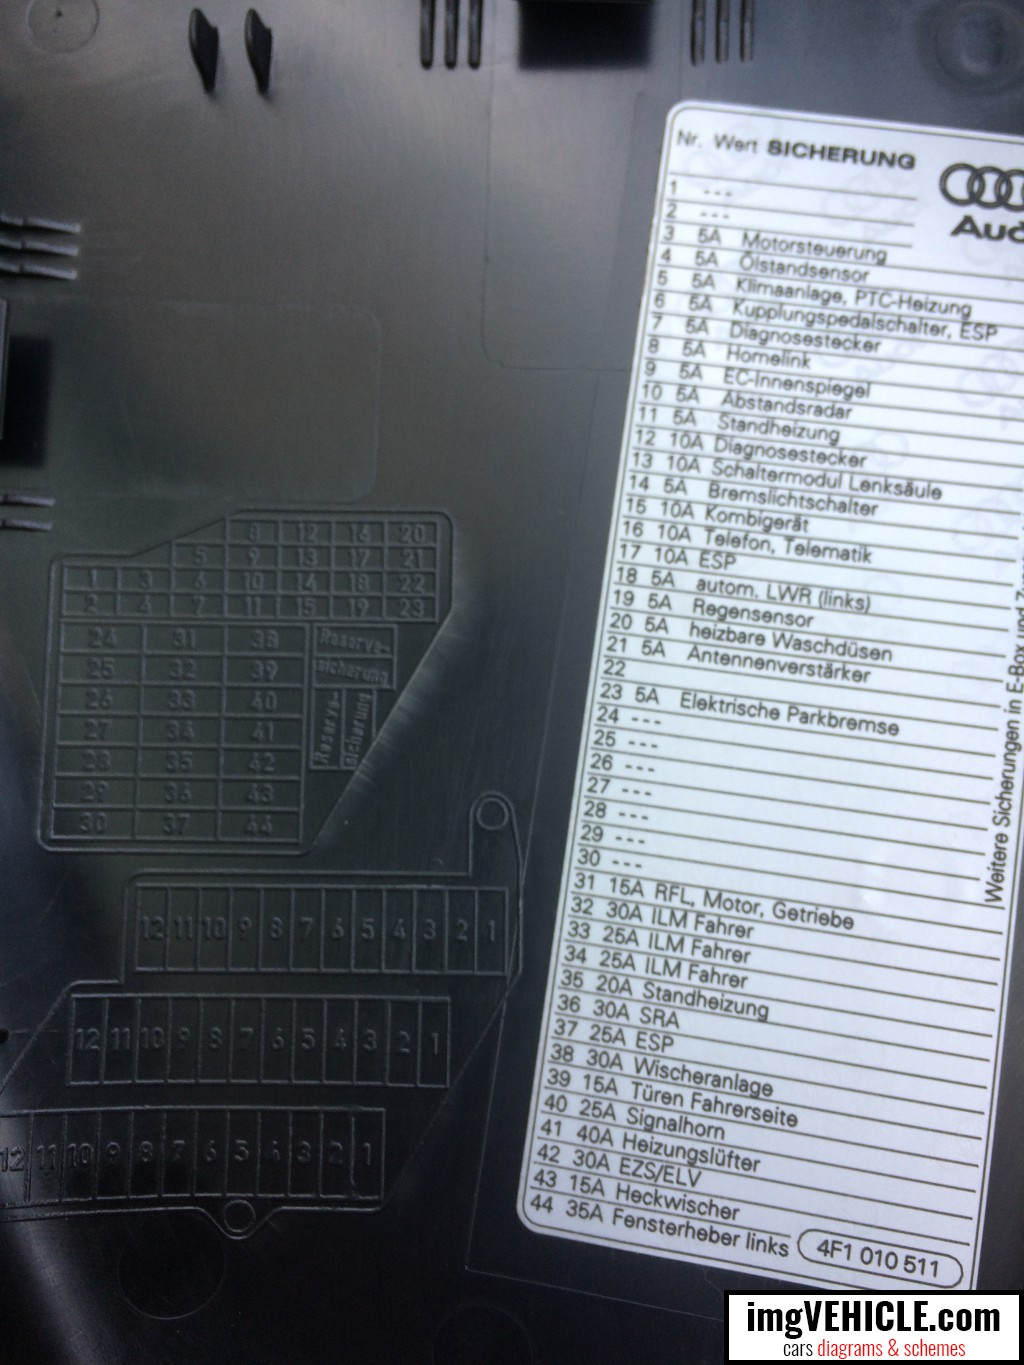 2007 Audi A4 Fuse Box Auto Electrical Wiring Diagram 2004